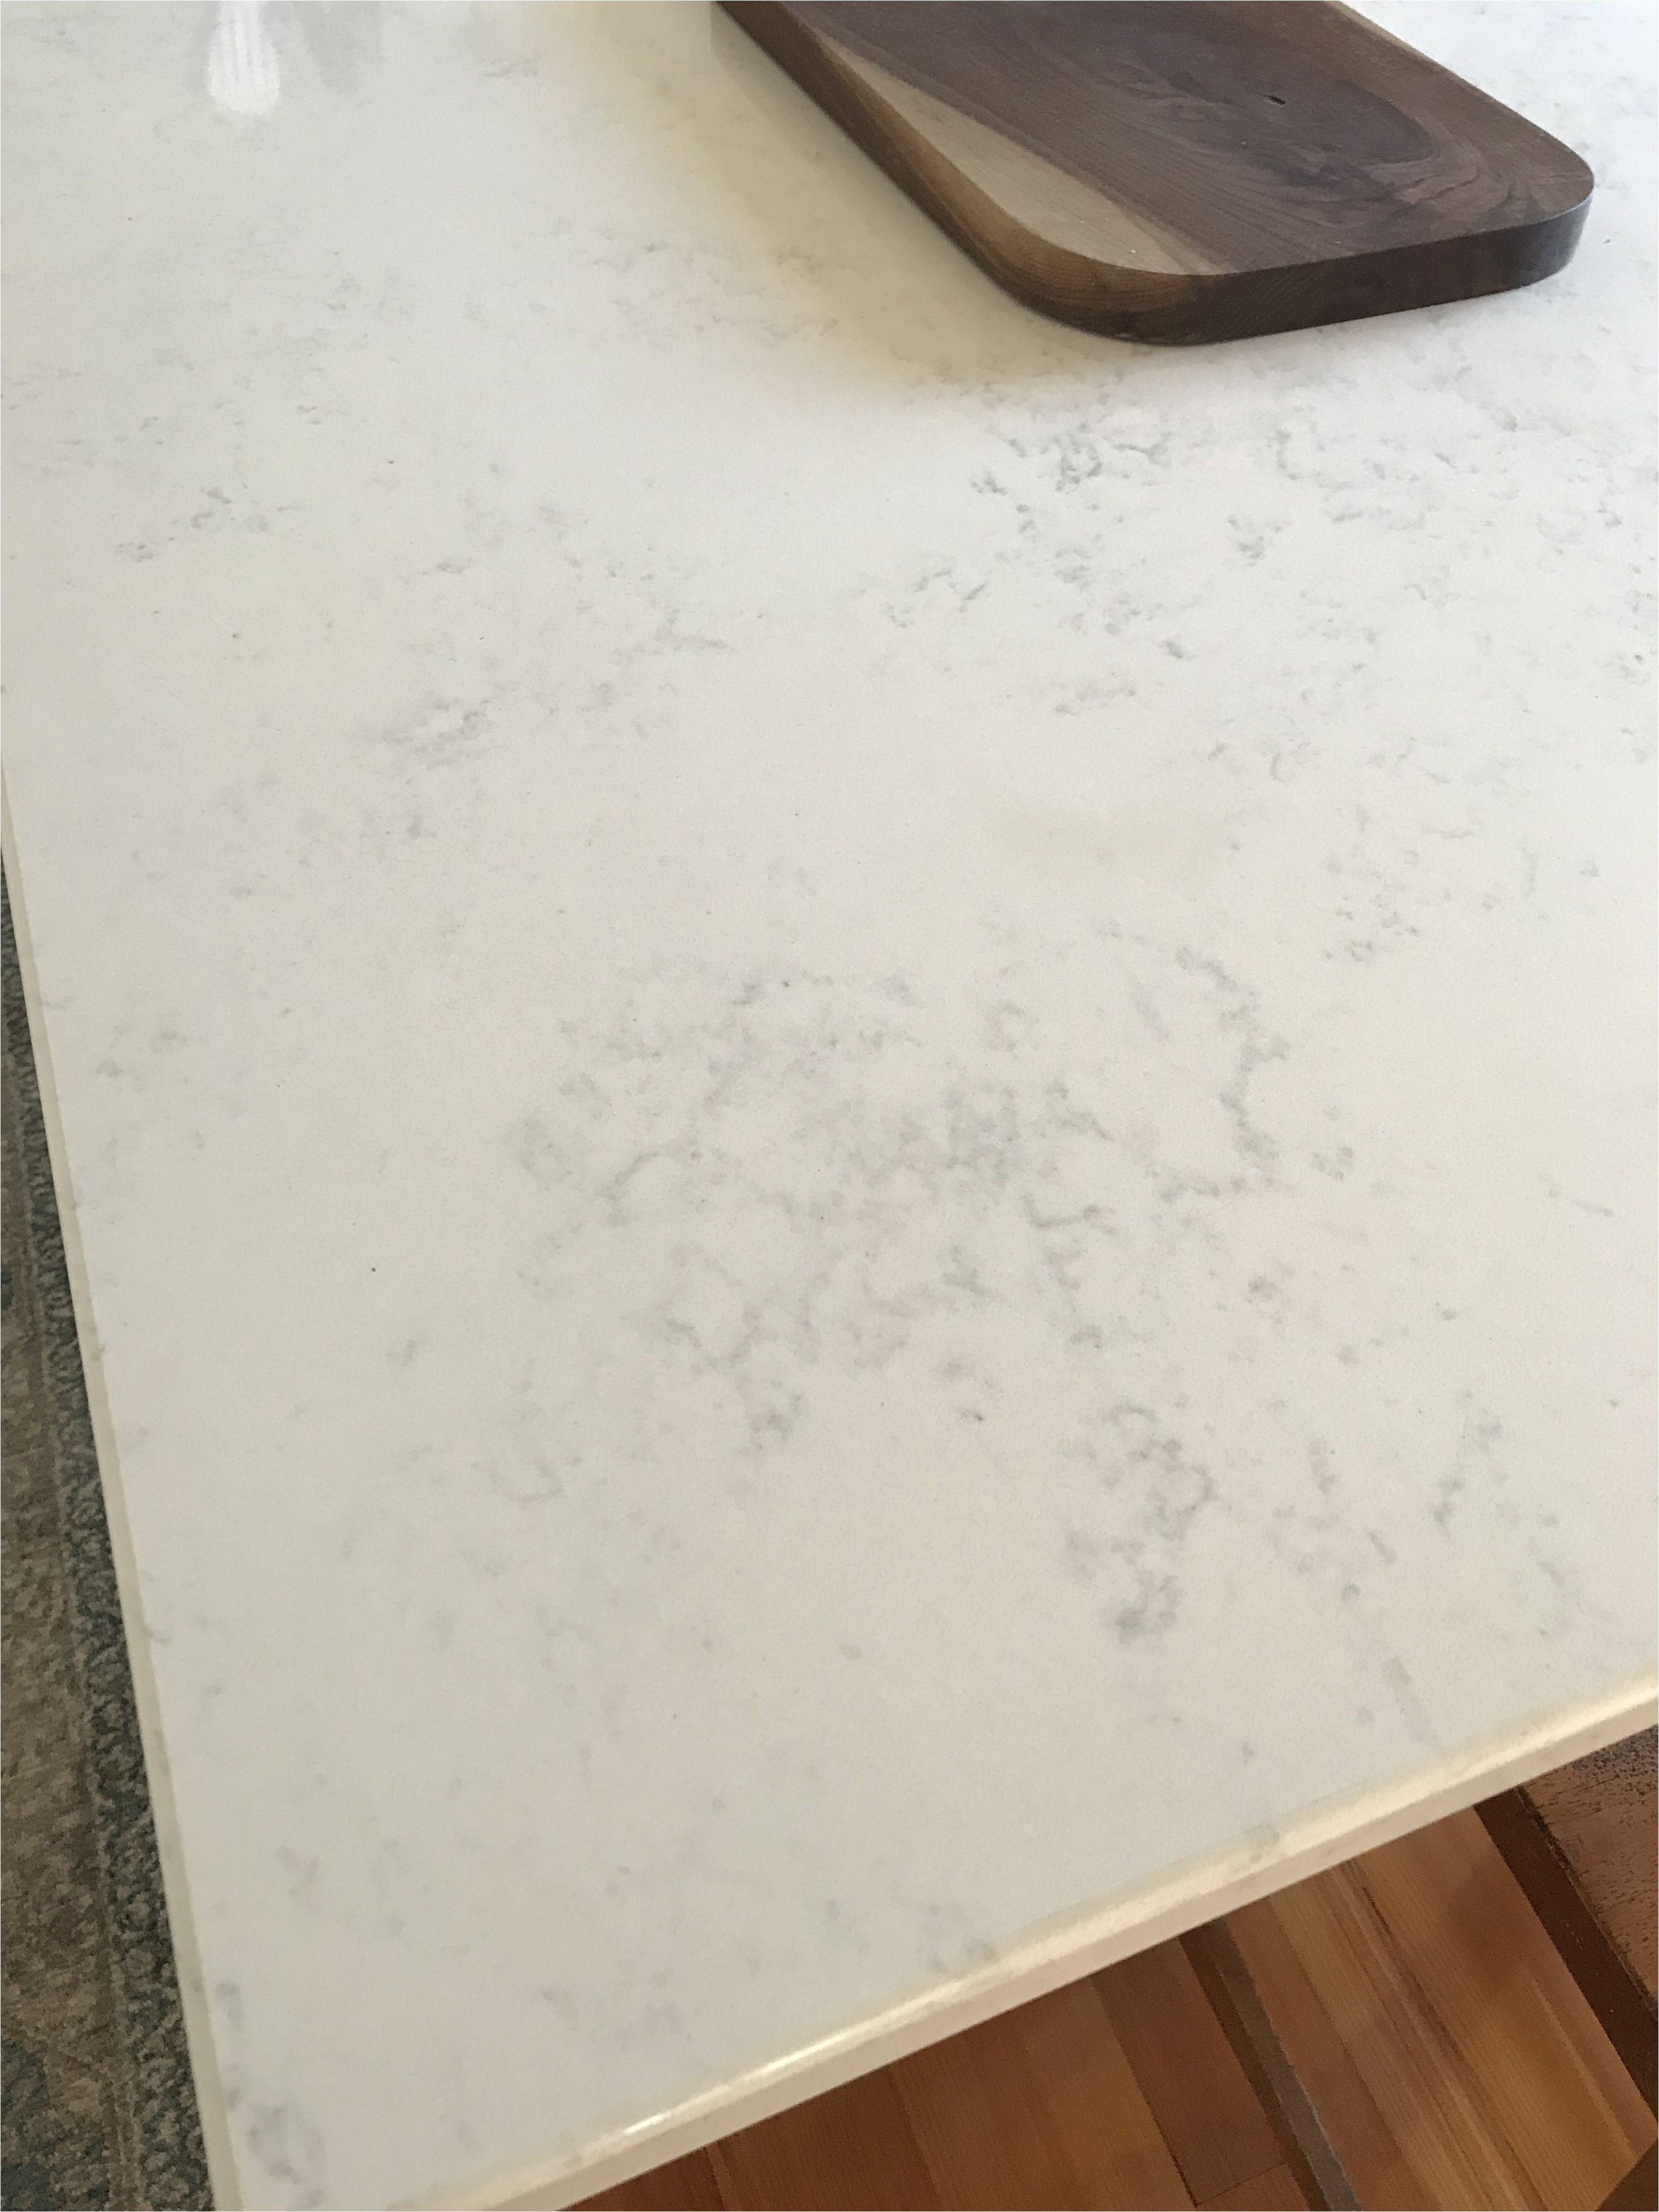 quartz countertops in calacatta vicenza with eased edge profile from albemarle countertop